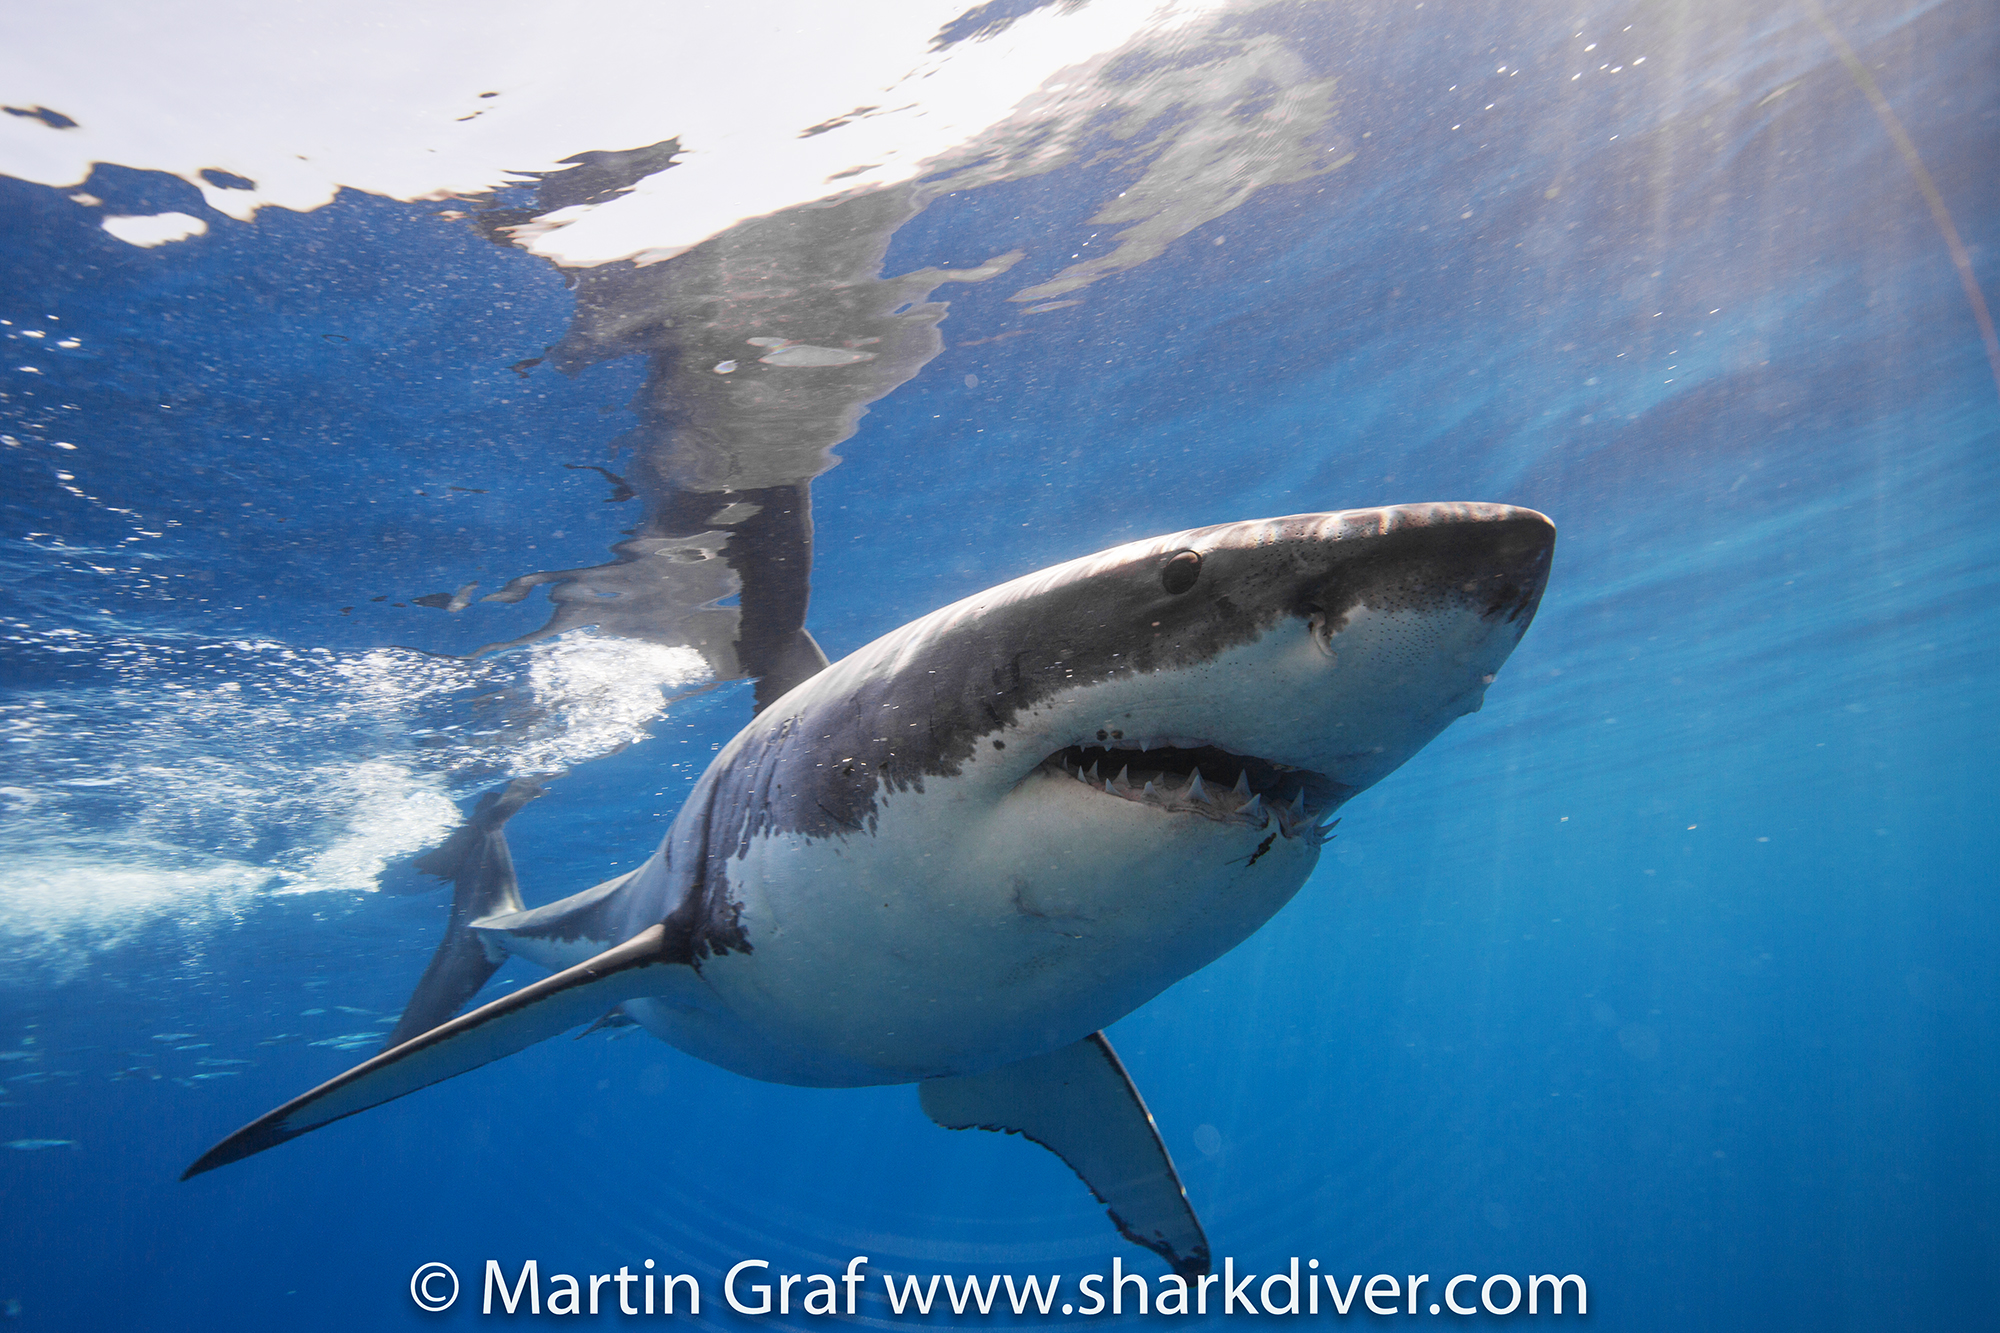 Great white shark by Martin Graf of Shark Diver